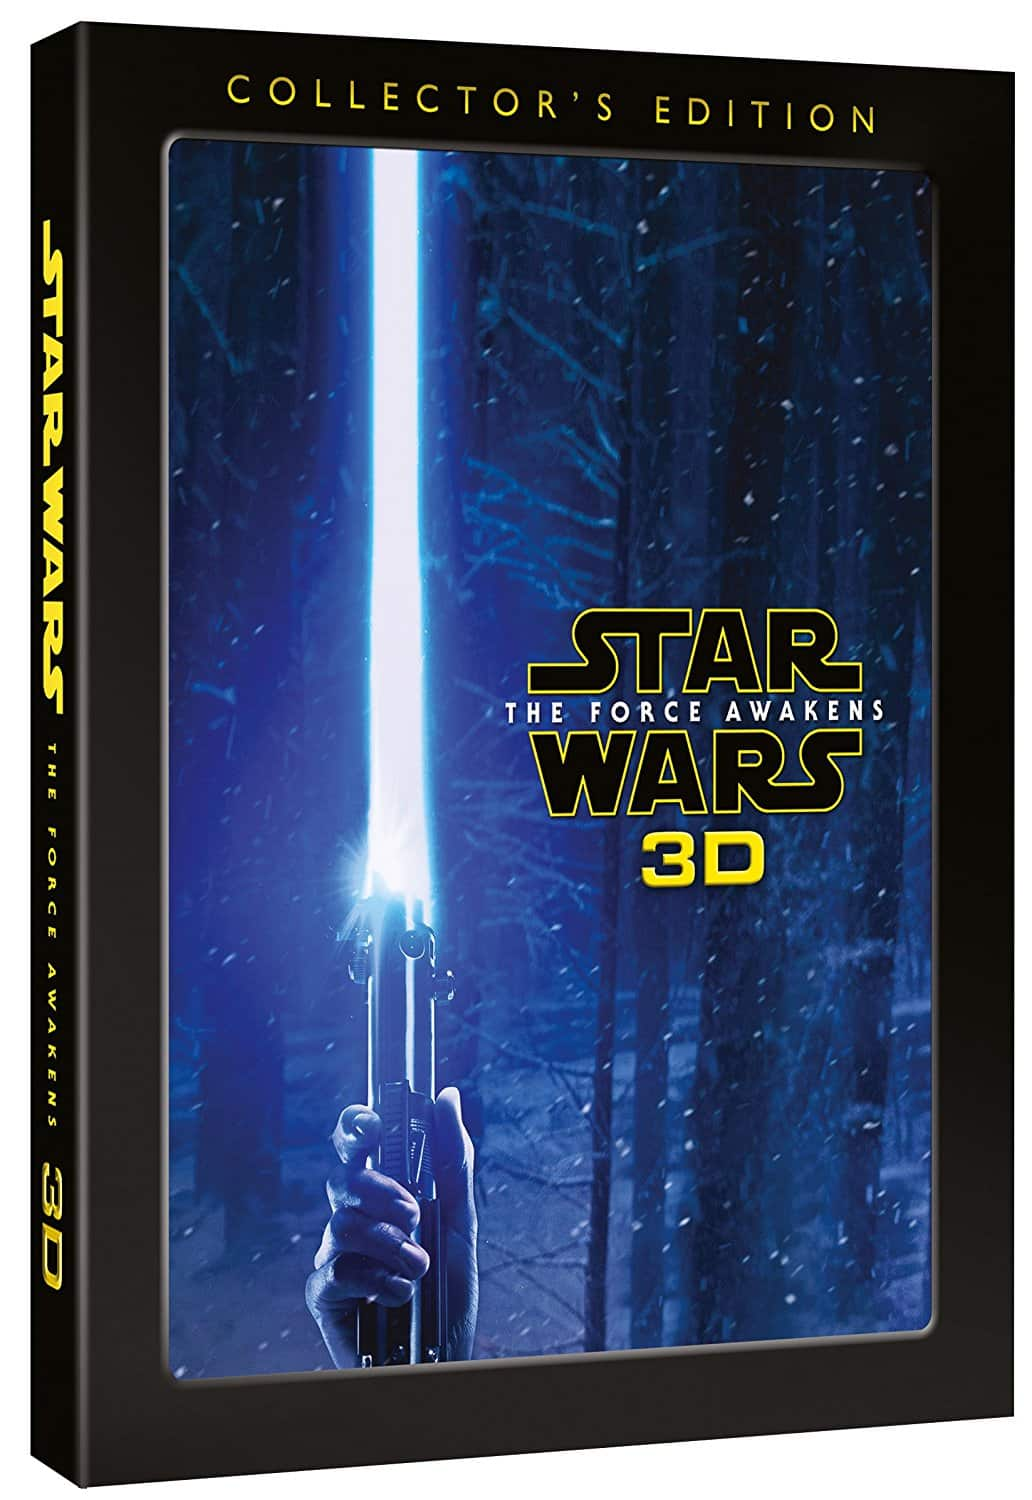 Star Wars VII: Force Awakens - 3D Blu-ray Collector's Edition $22